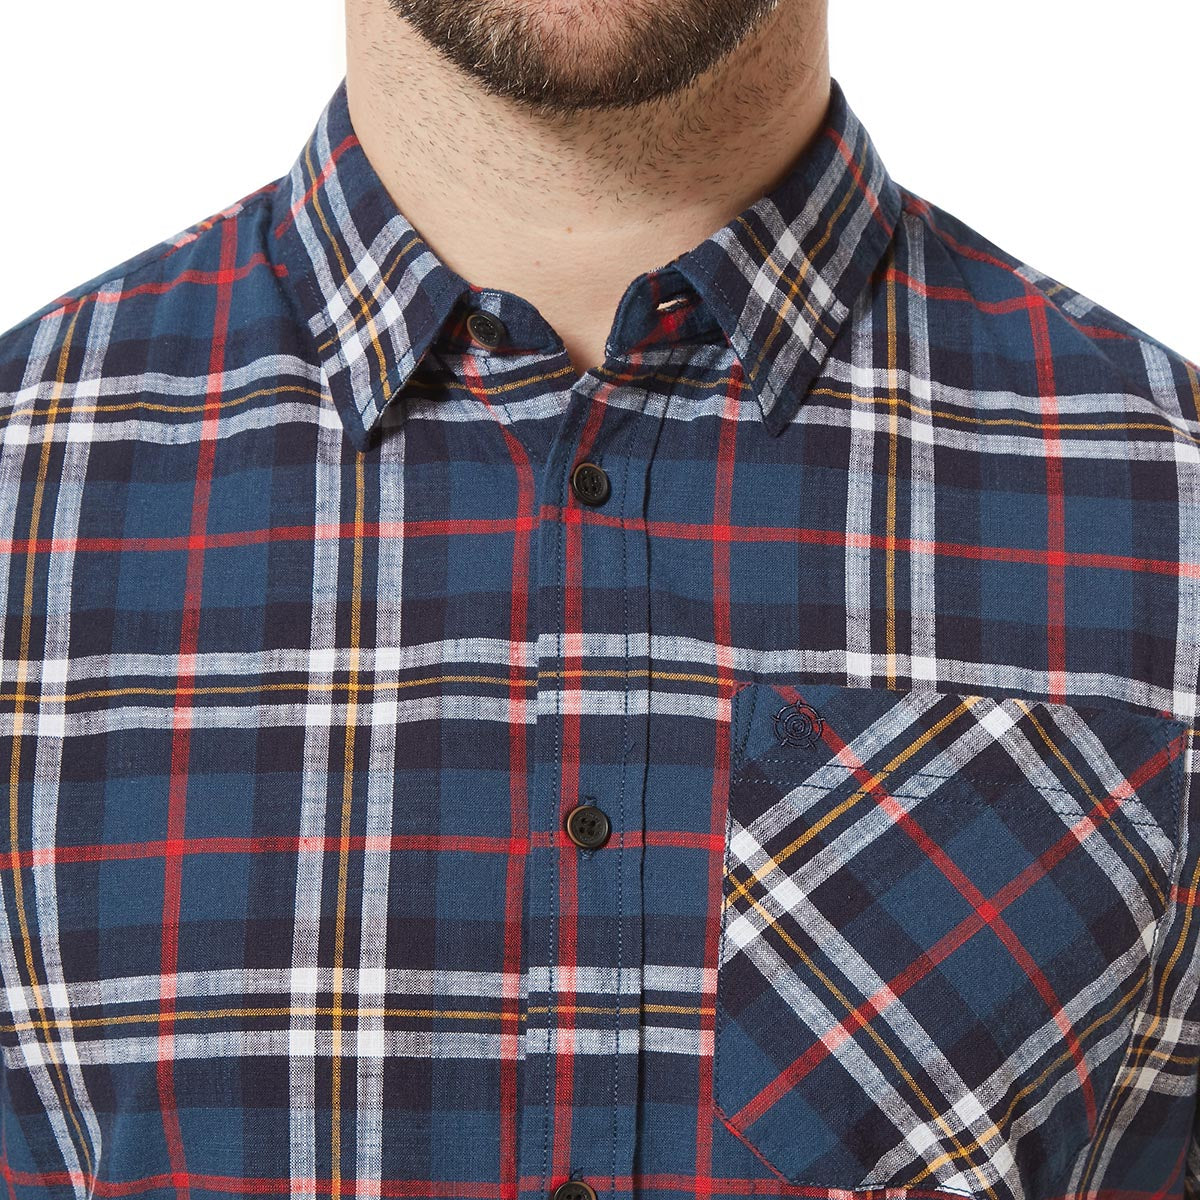 Donald Mens Short Sleeve Shirt - Navy Check image 4